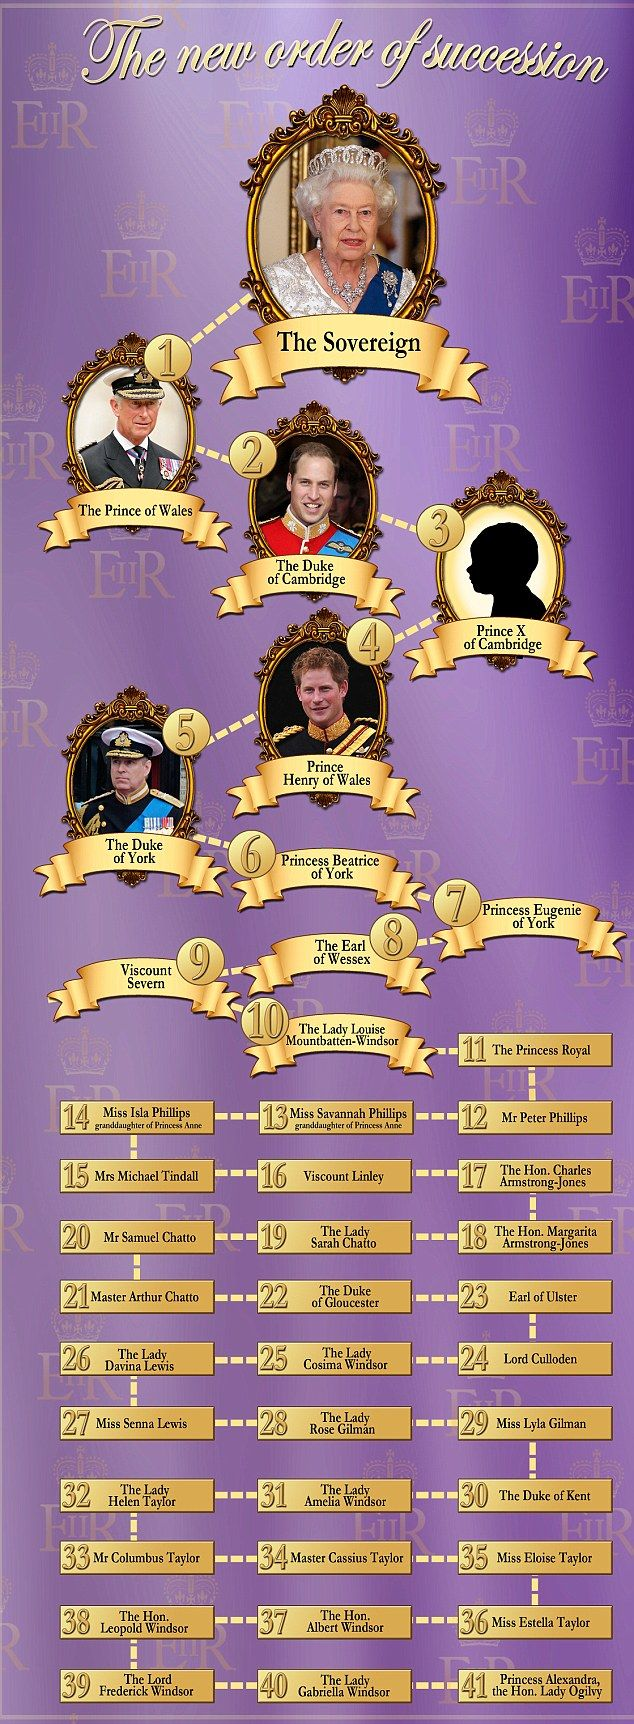 Line of Succession. Baby Cambridge is now Prince George Alexander Louis of Cambridge.